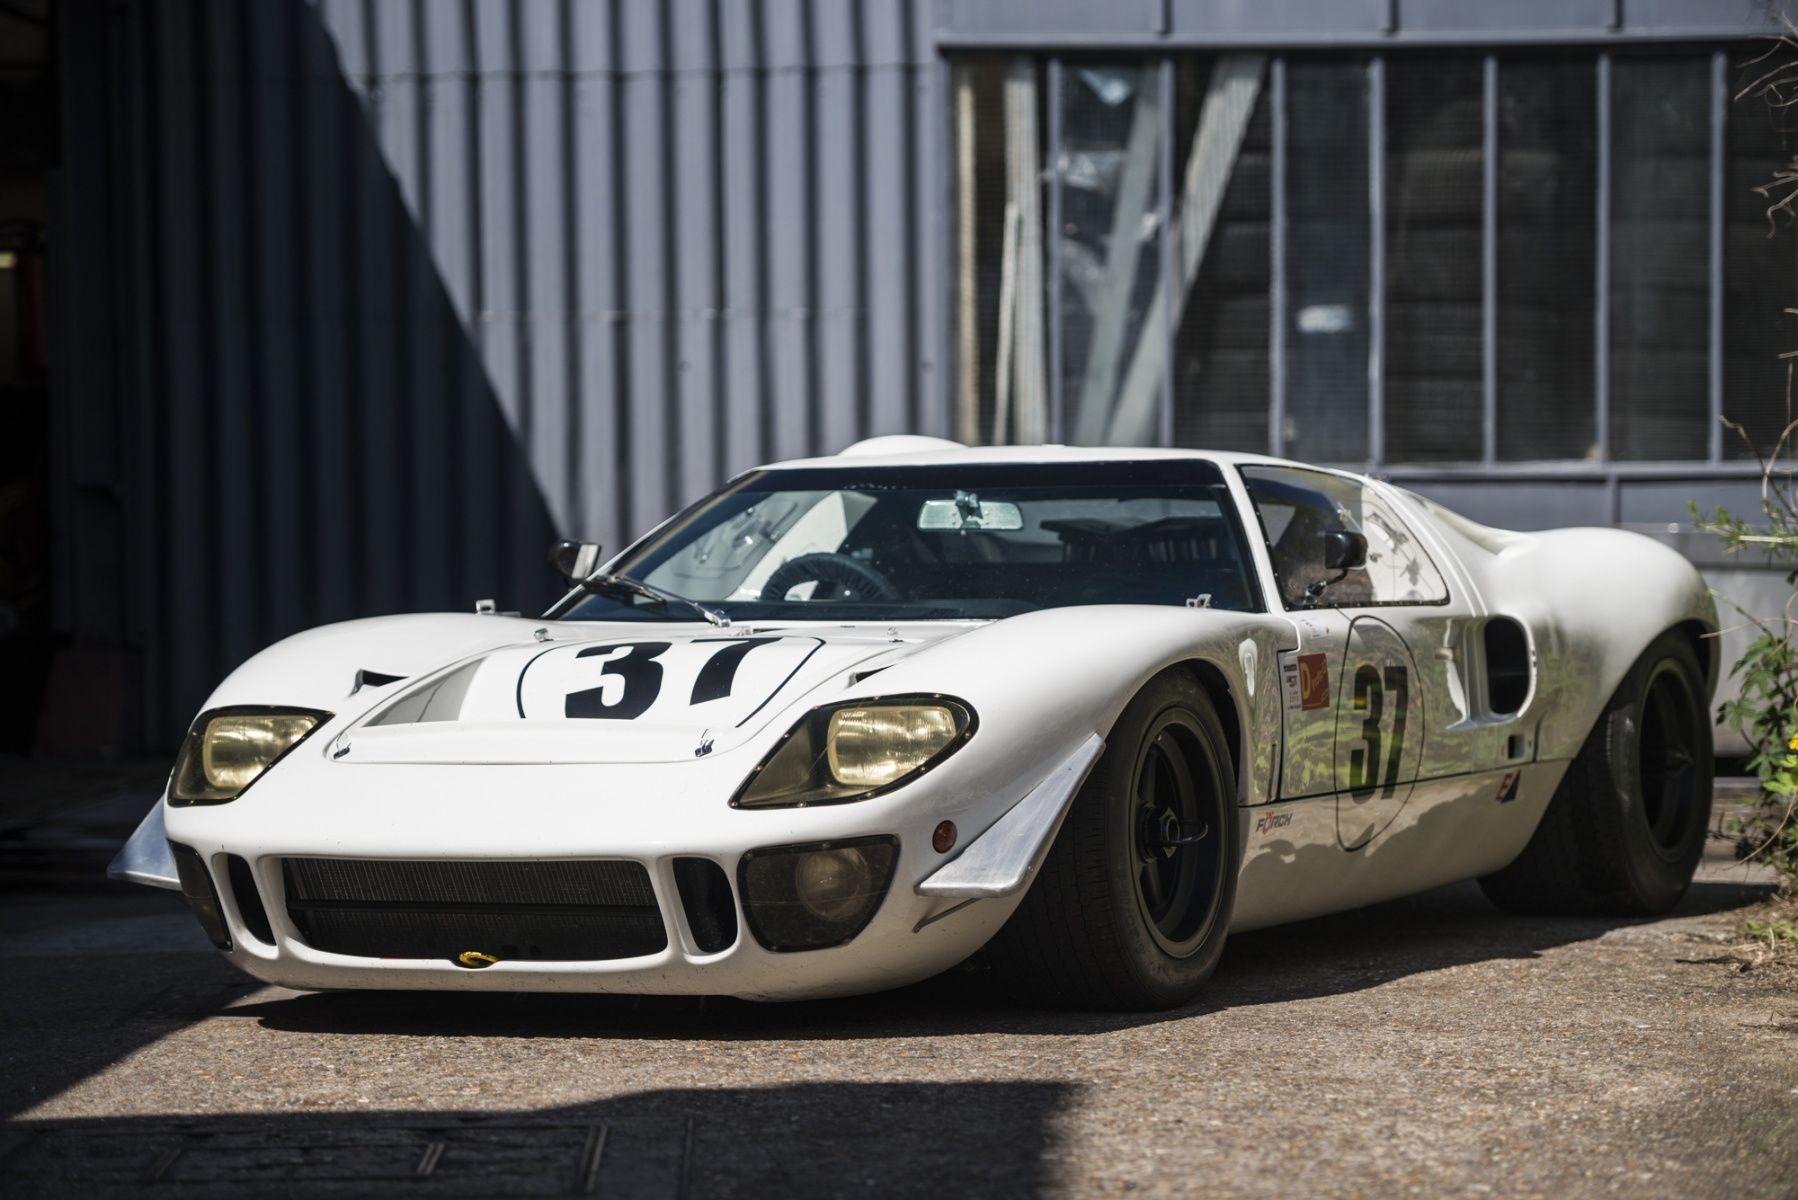 Ford Gt40 Le Mans 1966 Ford Gt40 Le Mans Wallpapers Hd Images